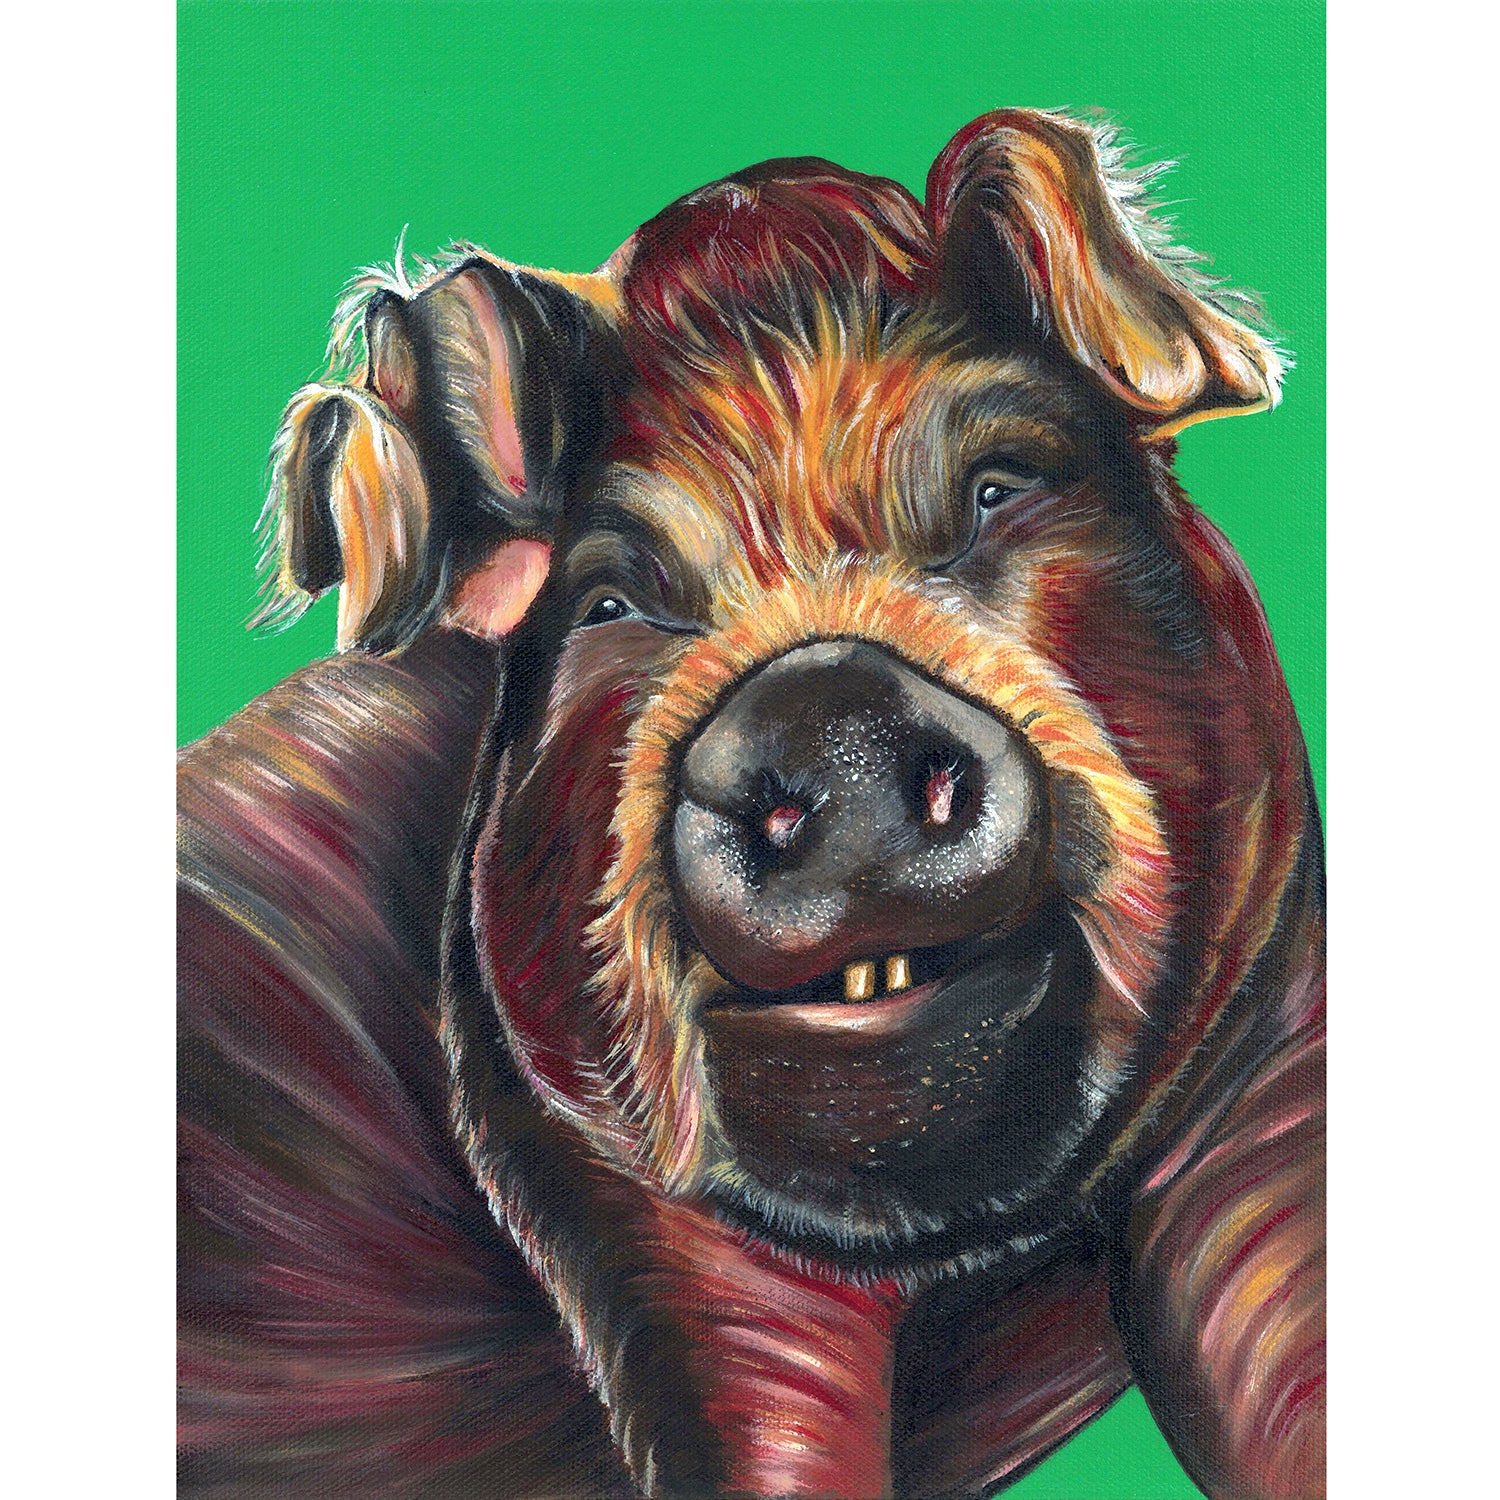 Pig painting- acrylic on canvas with a green background. Bella is a pig that lives at Loving Farm Animal Sanctuary in California